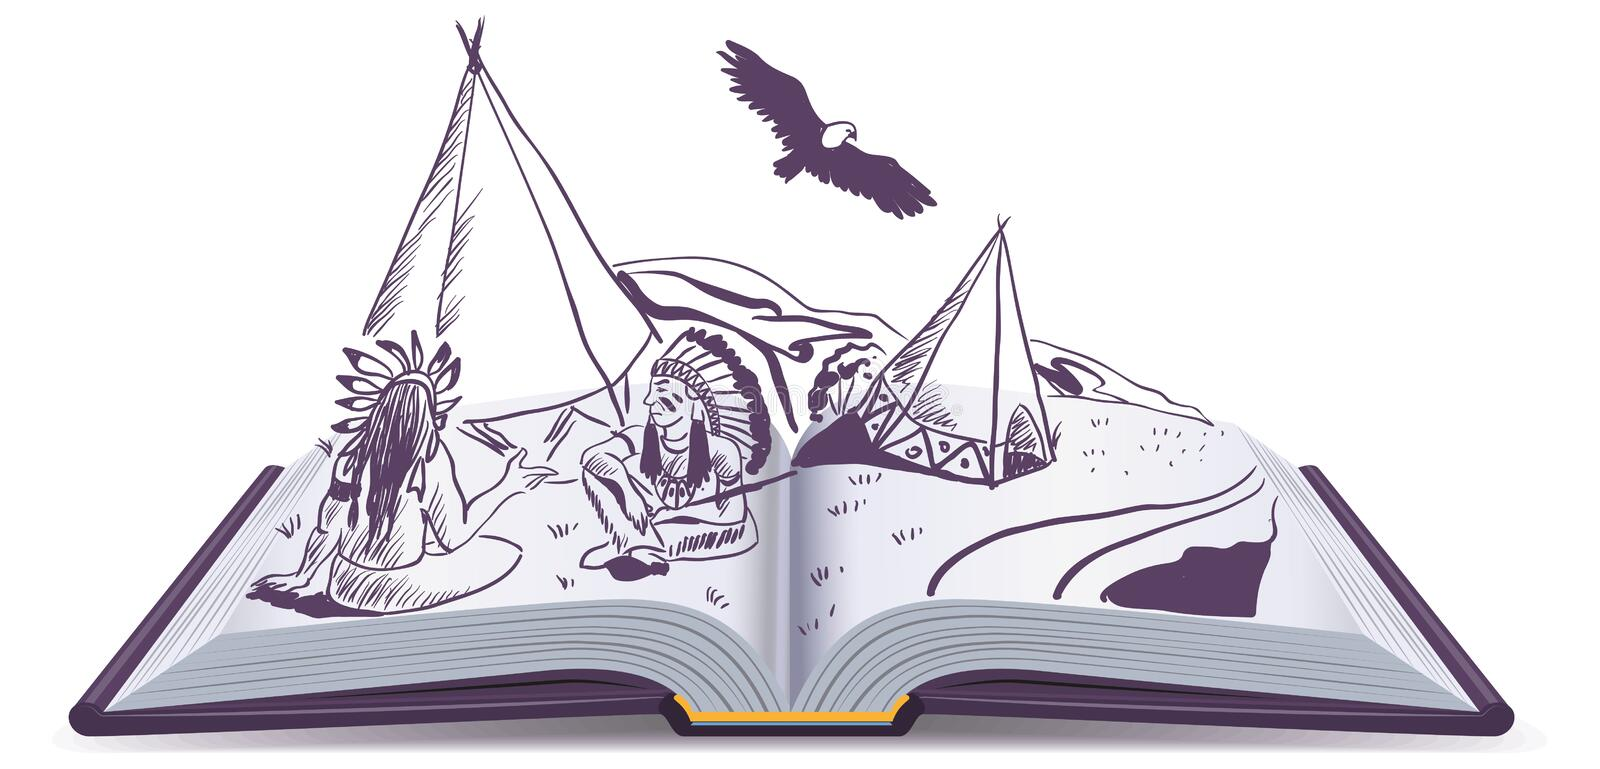 Open book. Indians sit at wigwam on pages of open book. Adventure story royalty free illustration